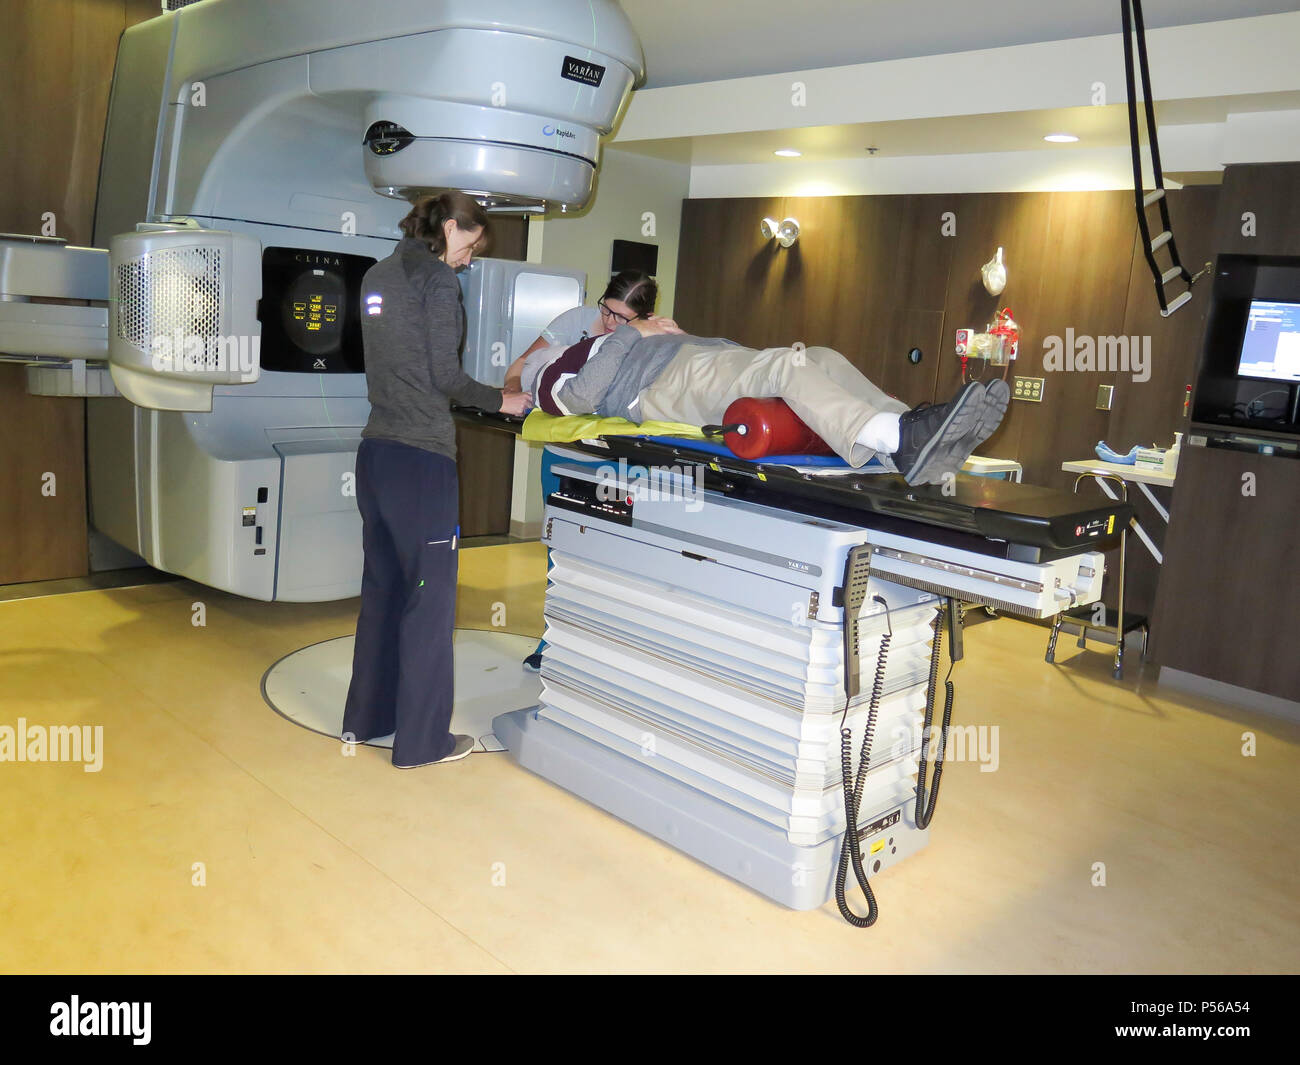 Adult Man receives Radiation Therapy his head  in a Hospital environment - Stock Image